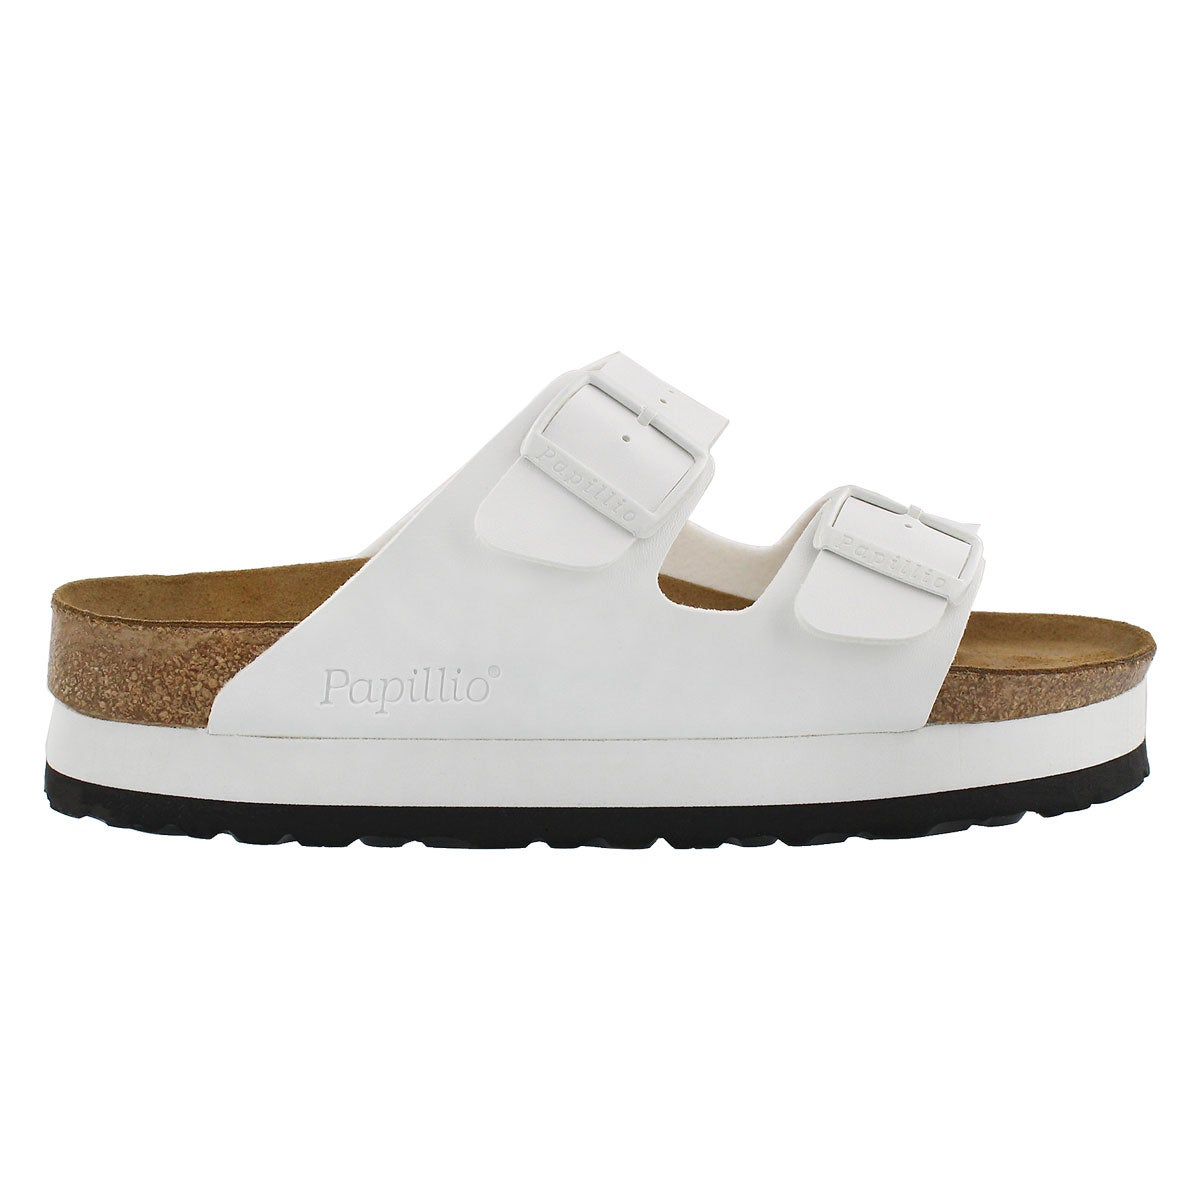 Lds Arizona Platform wht sandal - Narrow